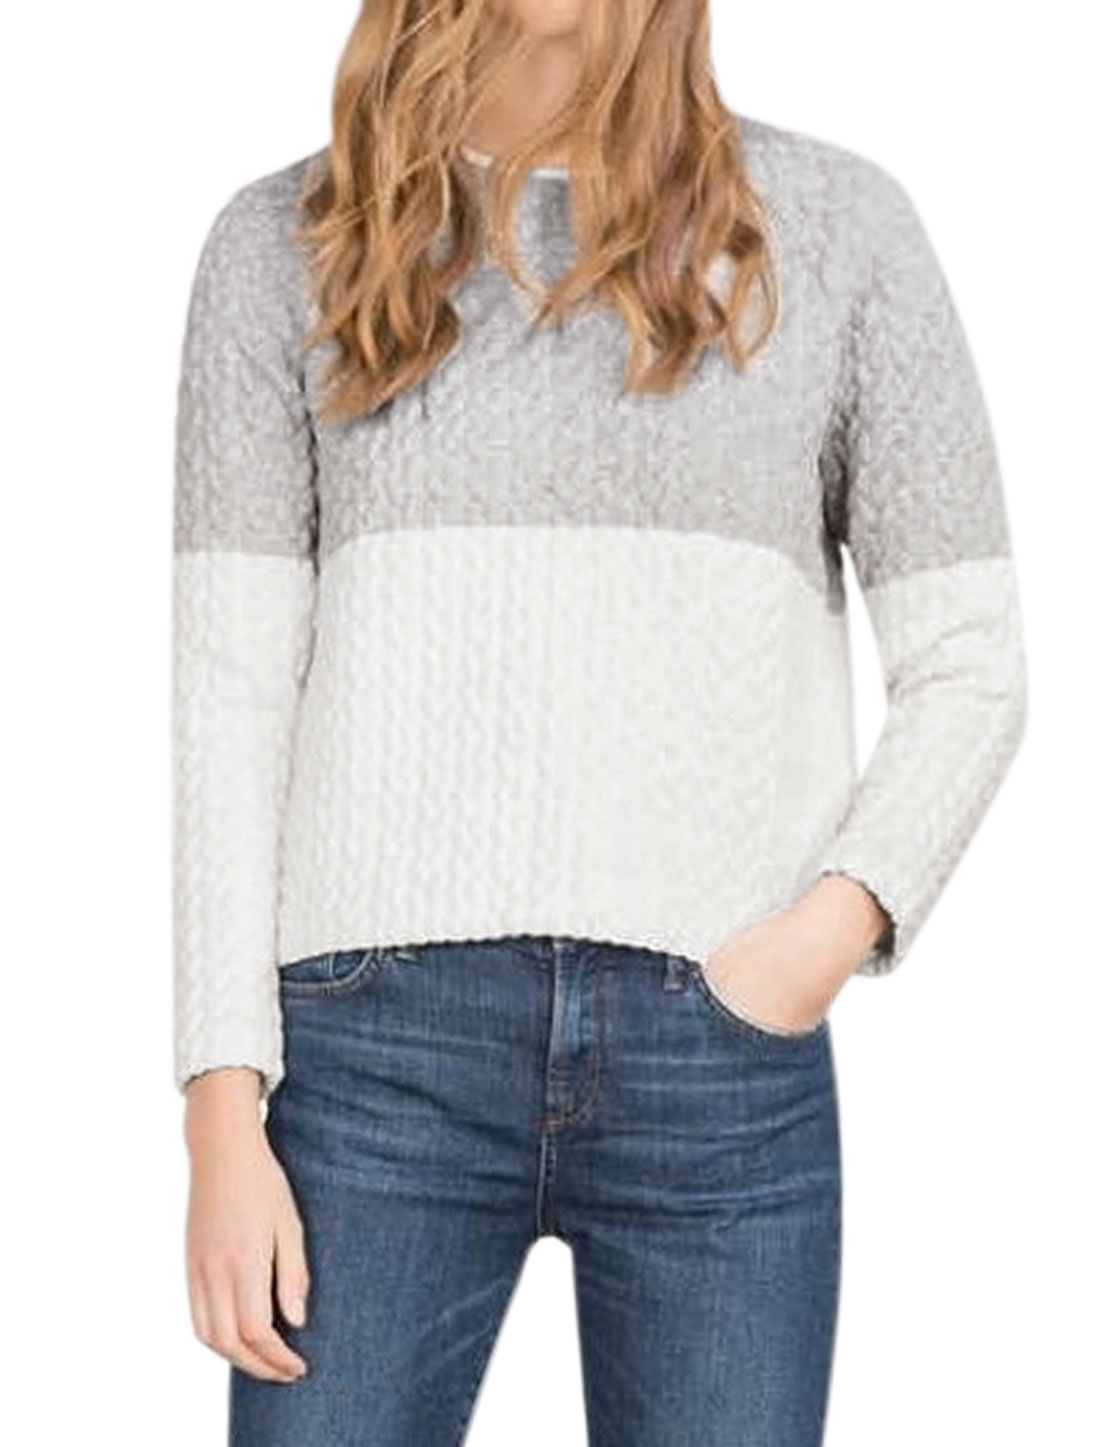 Women Raglan Sleeves Contrast Color Textured Sweatshirt Gray M